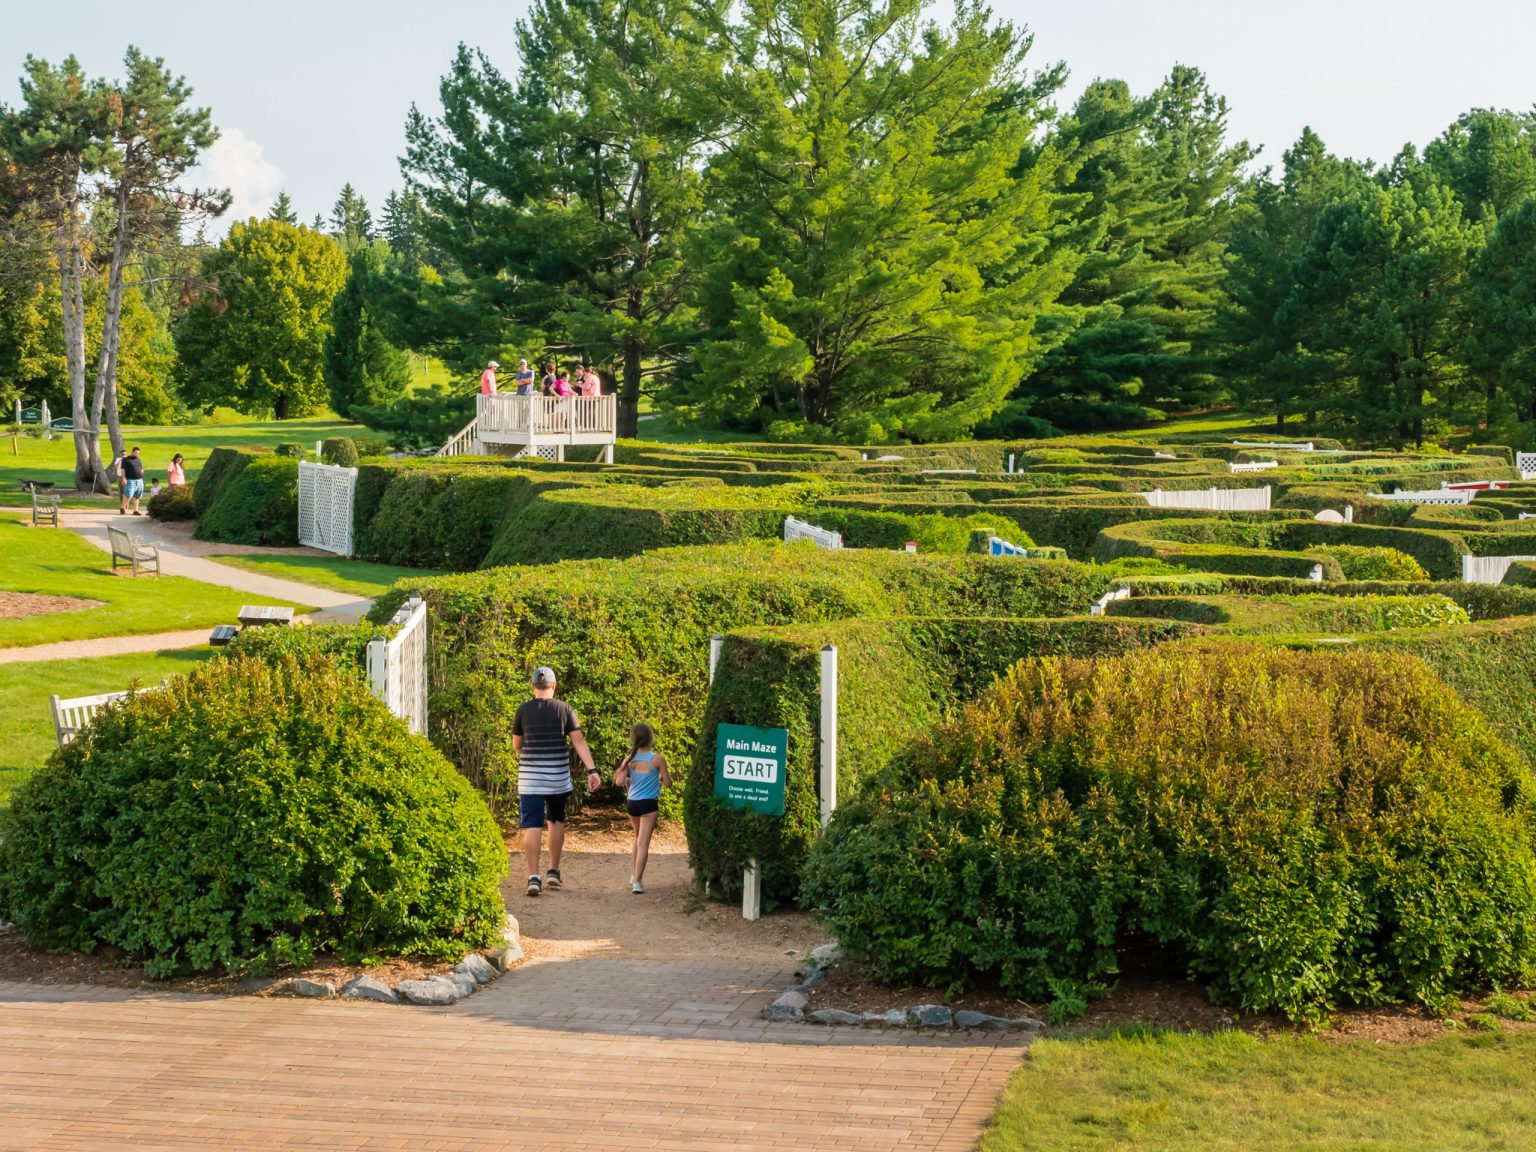 A father and his daughter walk into the Arboretum maze garden.